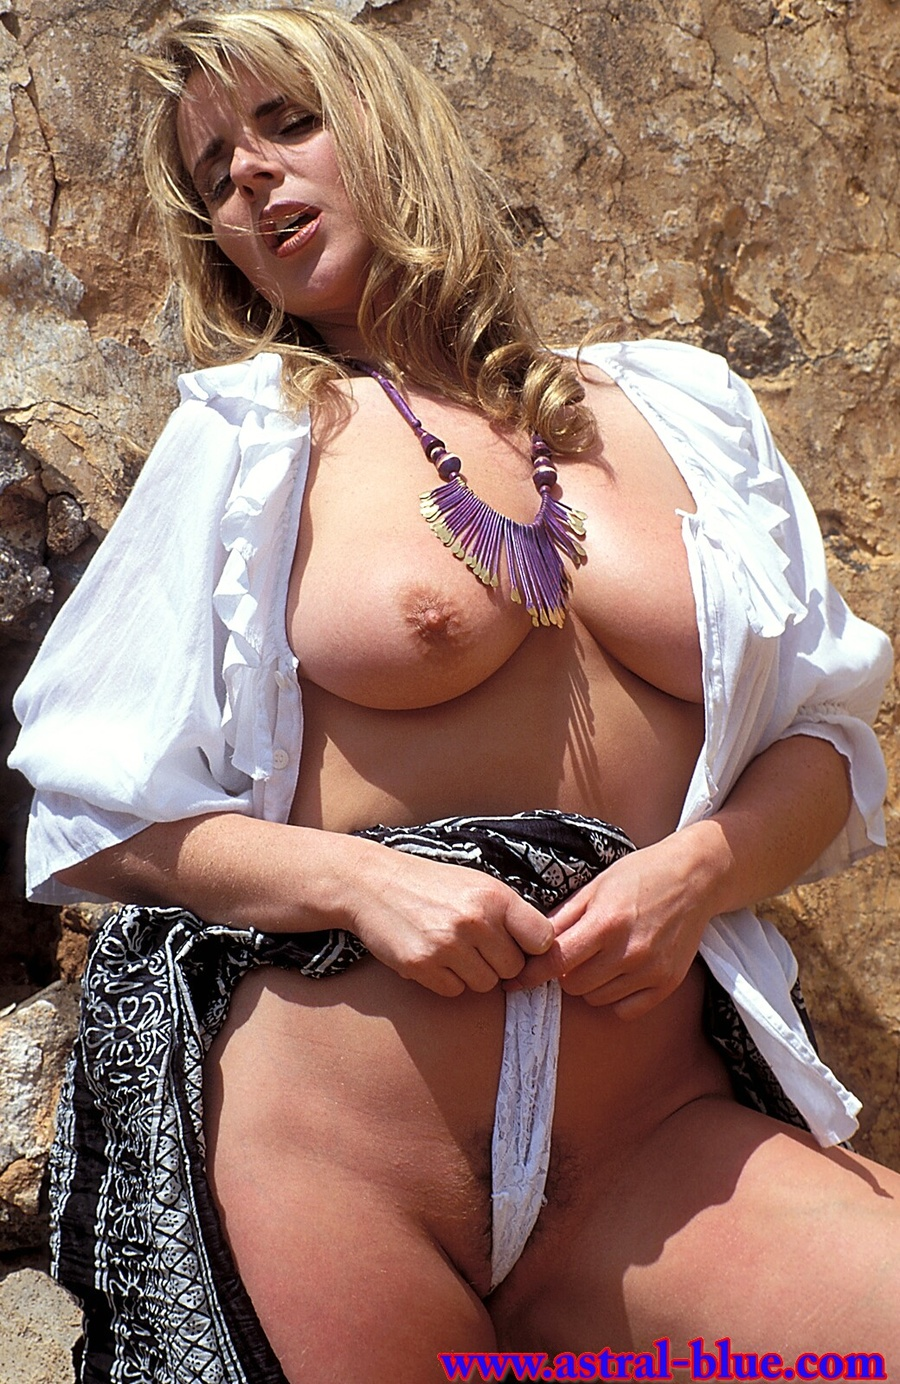 Racheal Farmer, Big Tits Uk Page 3 Girl, Nu - Xxx Dessert - Picture 3-1998